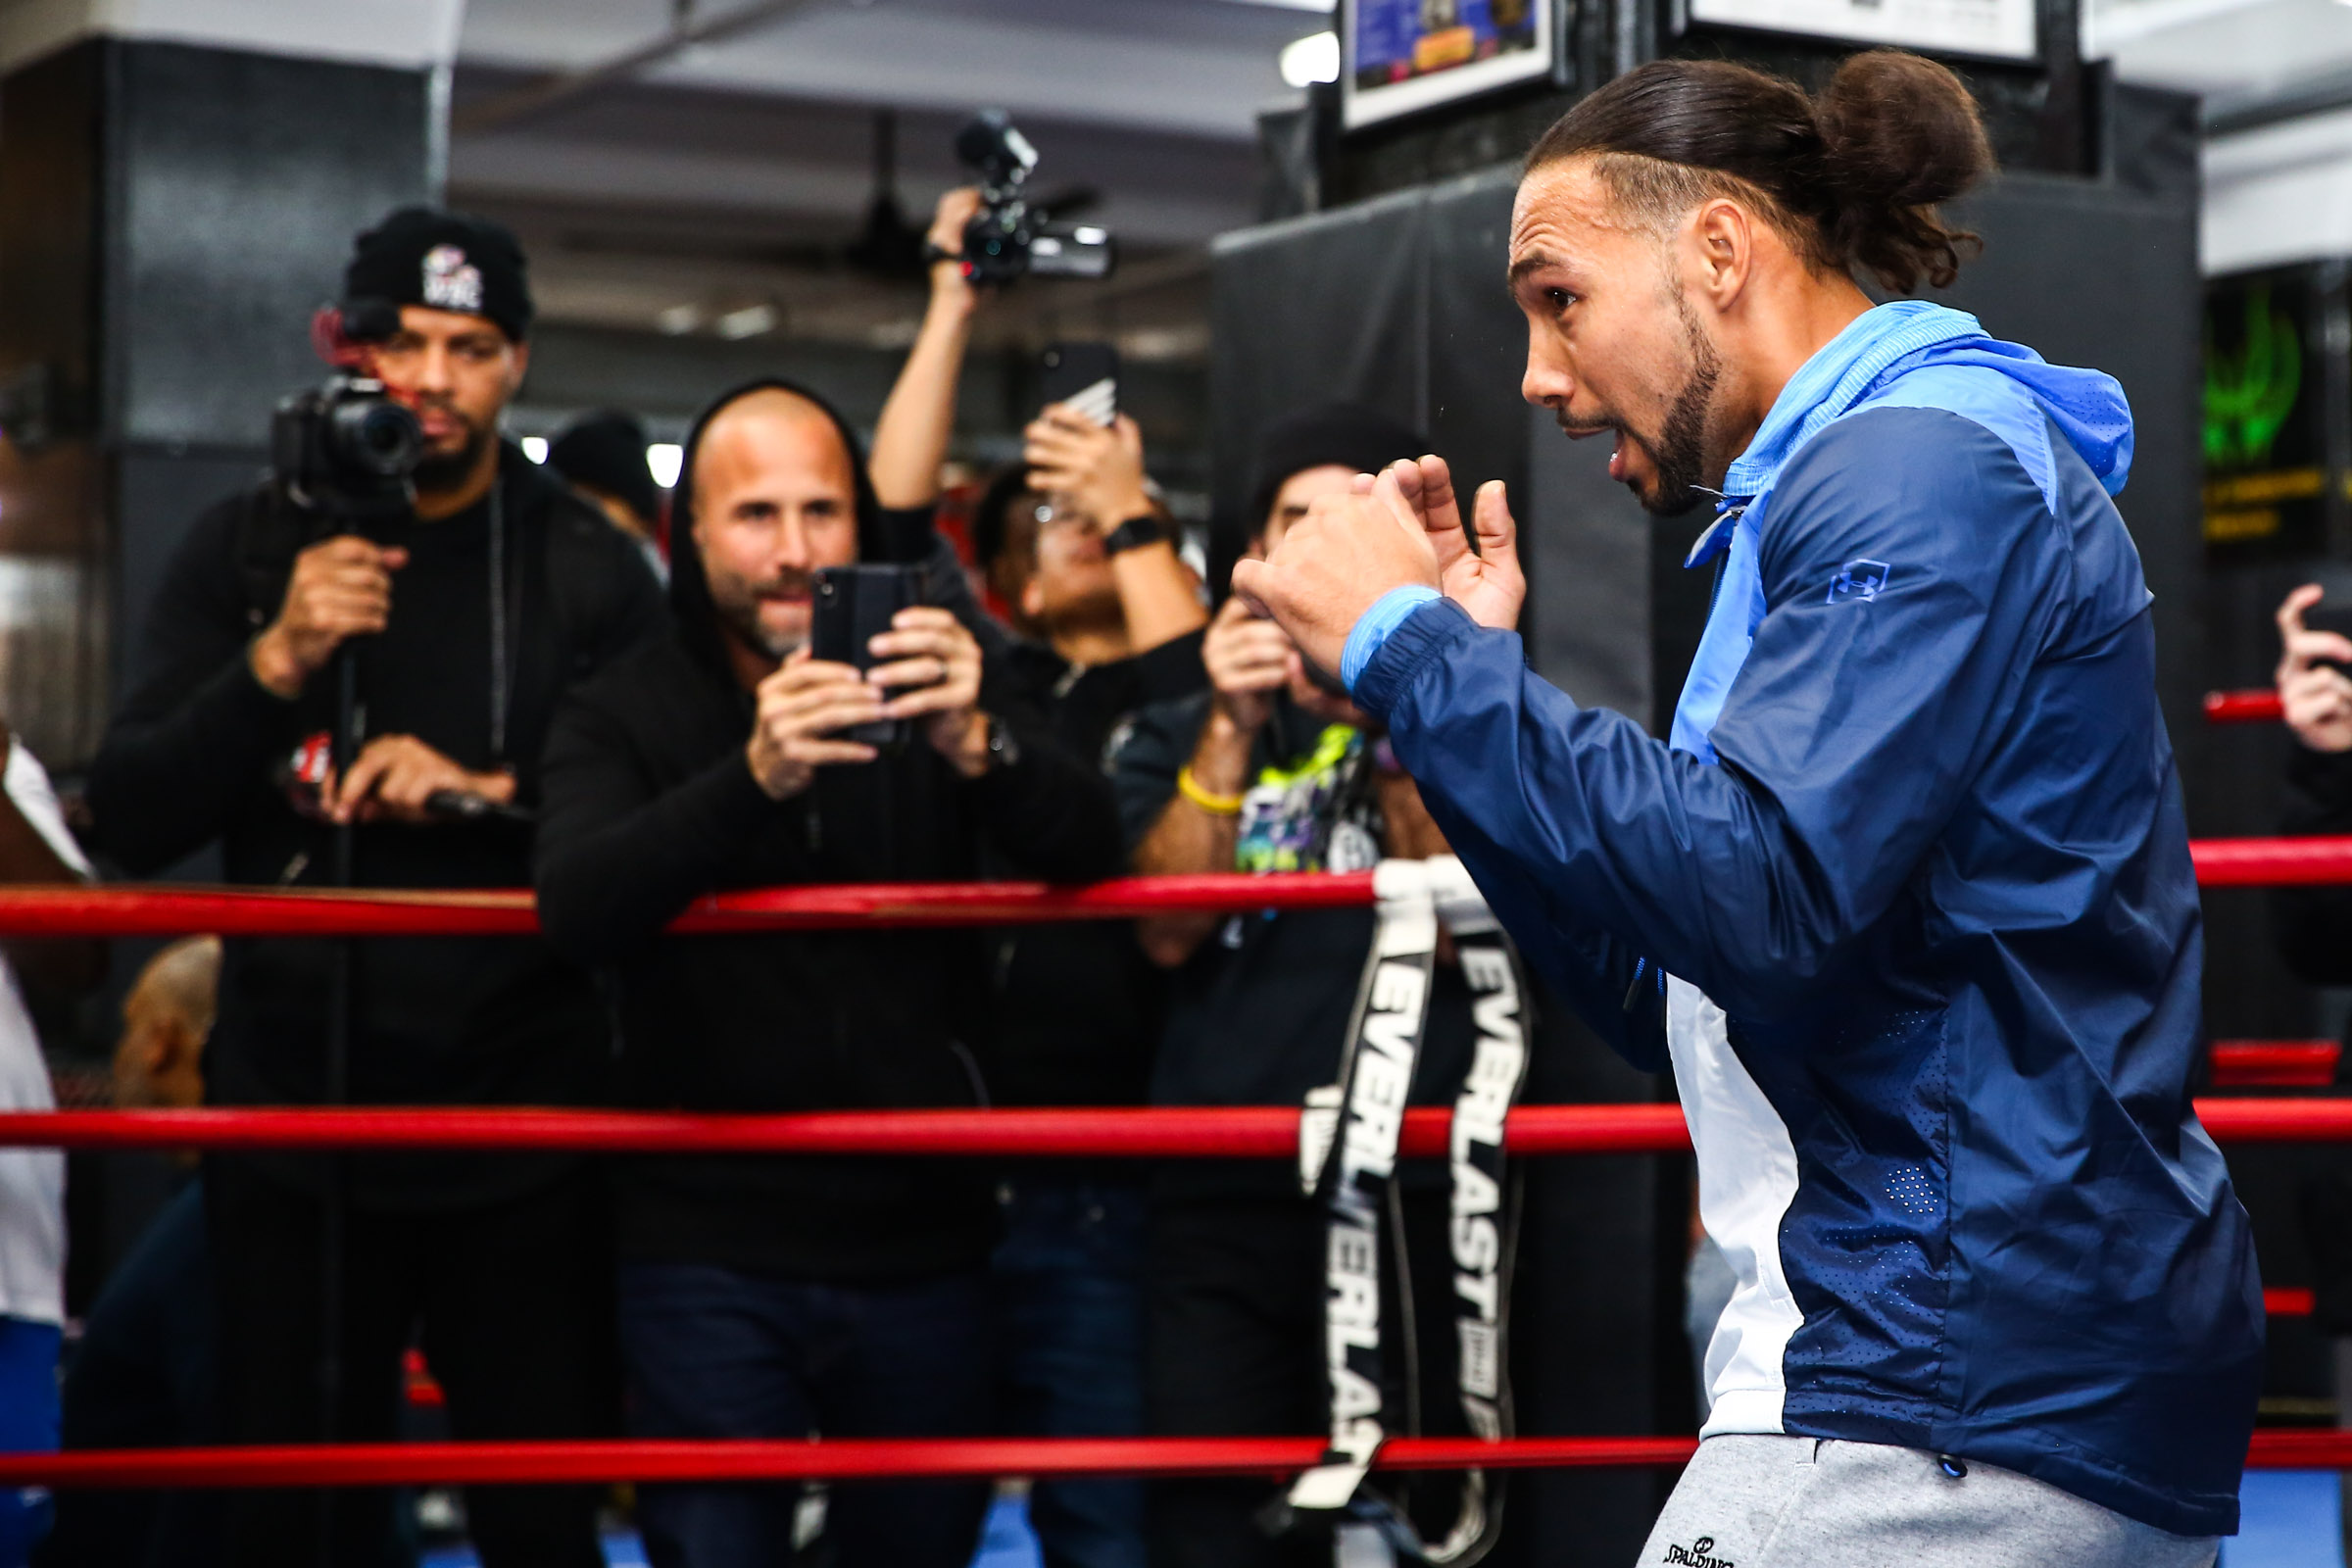 LR MEDIA WORKOUT KEITH THURMAN TRAPPFOTOS JANUARY232019 4966 - The Welterweight Picture, and Where Keith Thurman Fits Into It